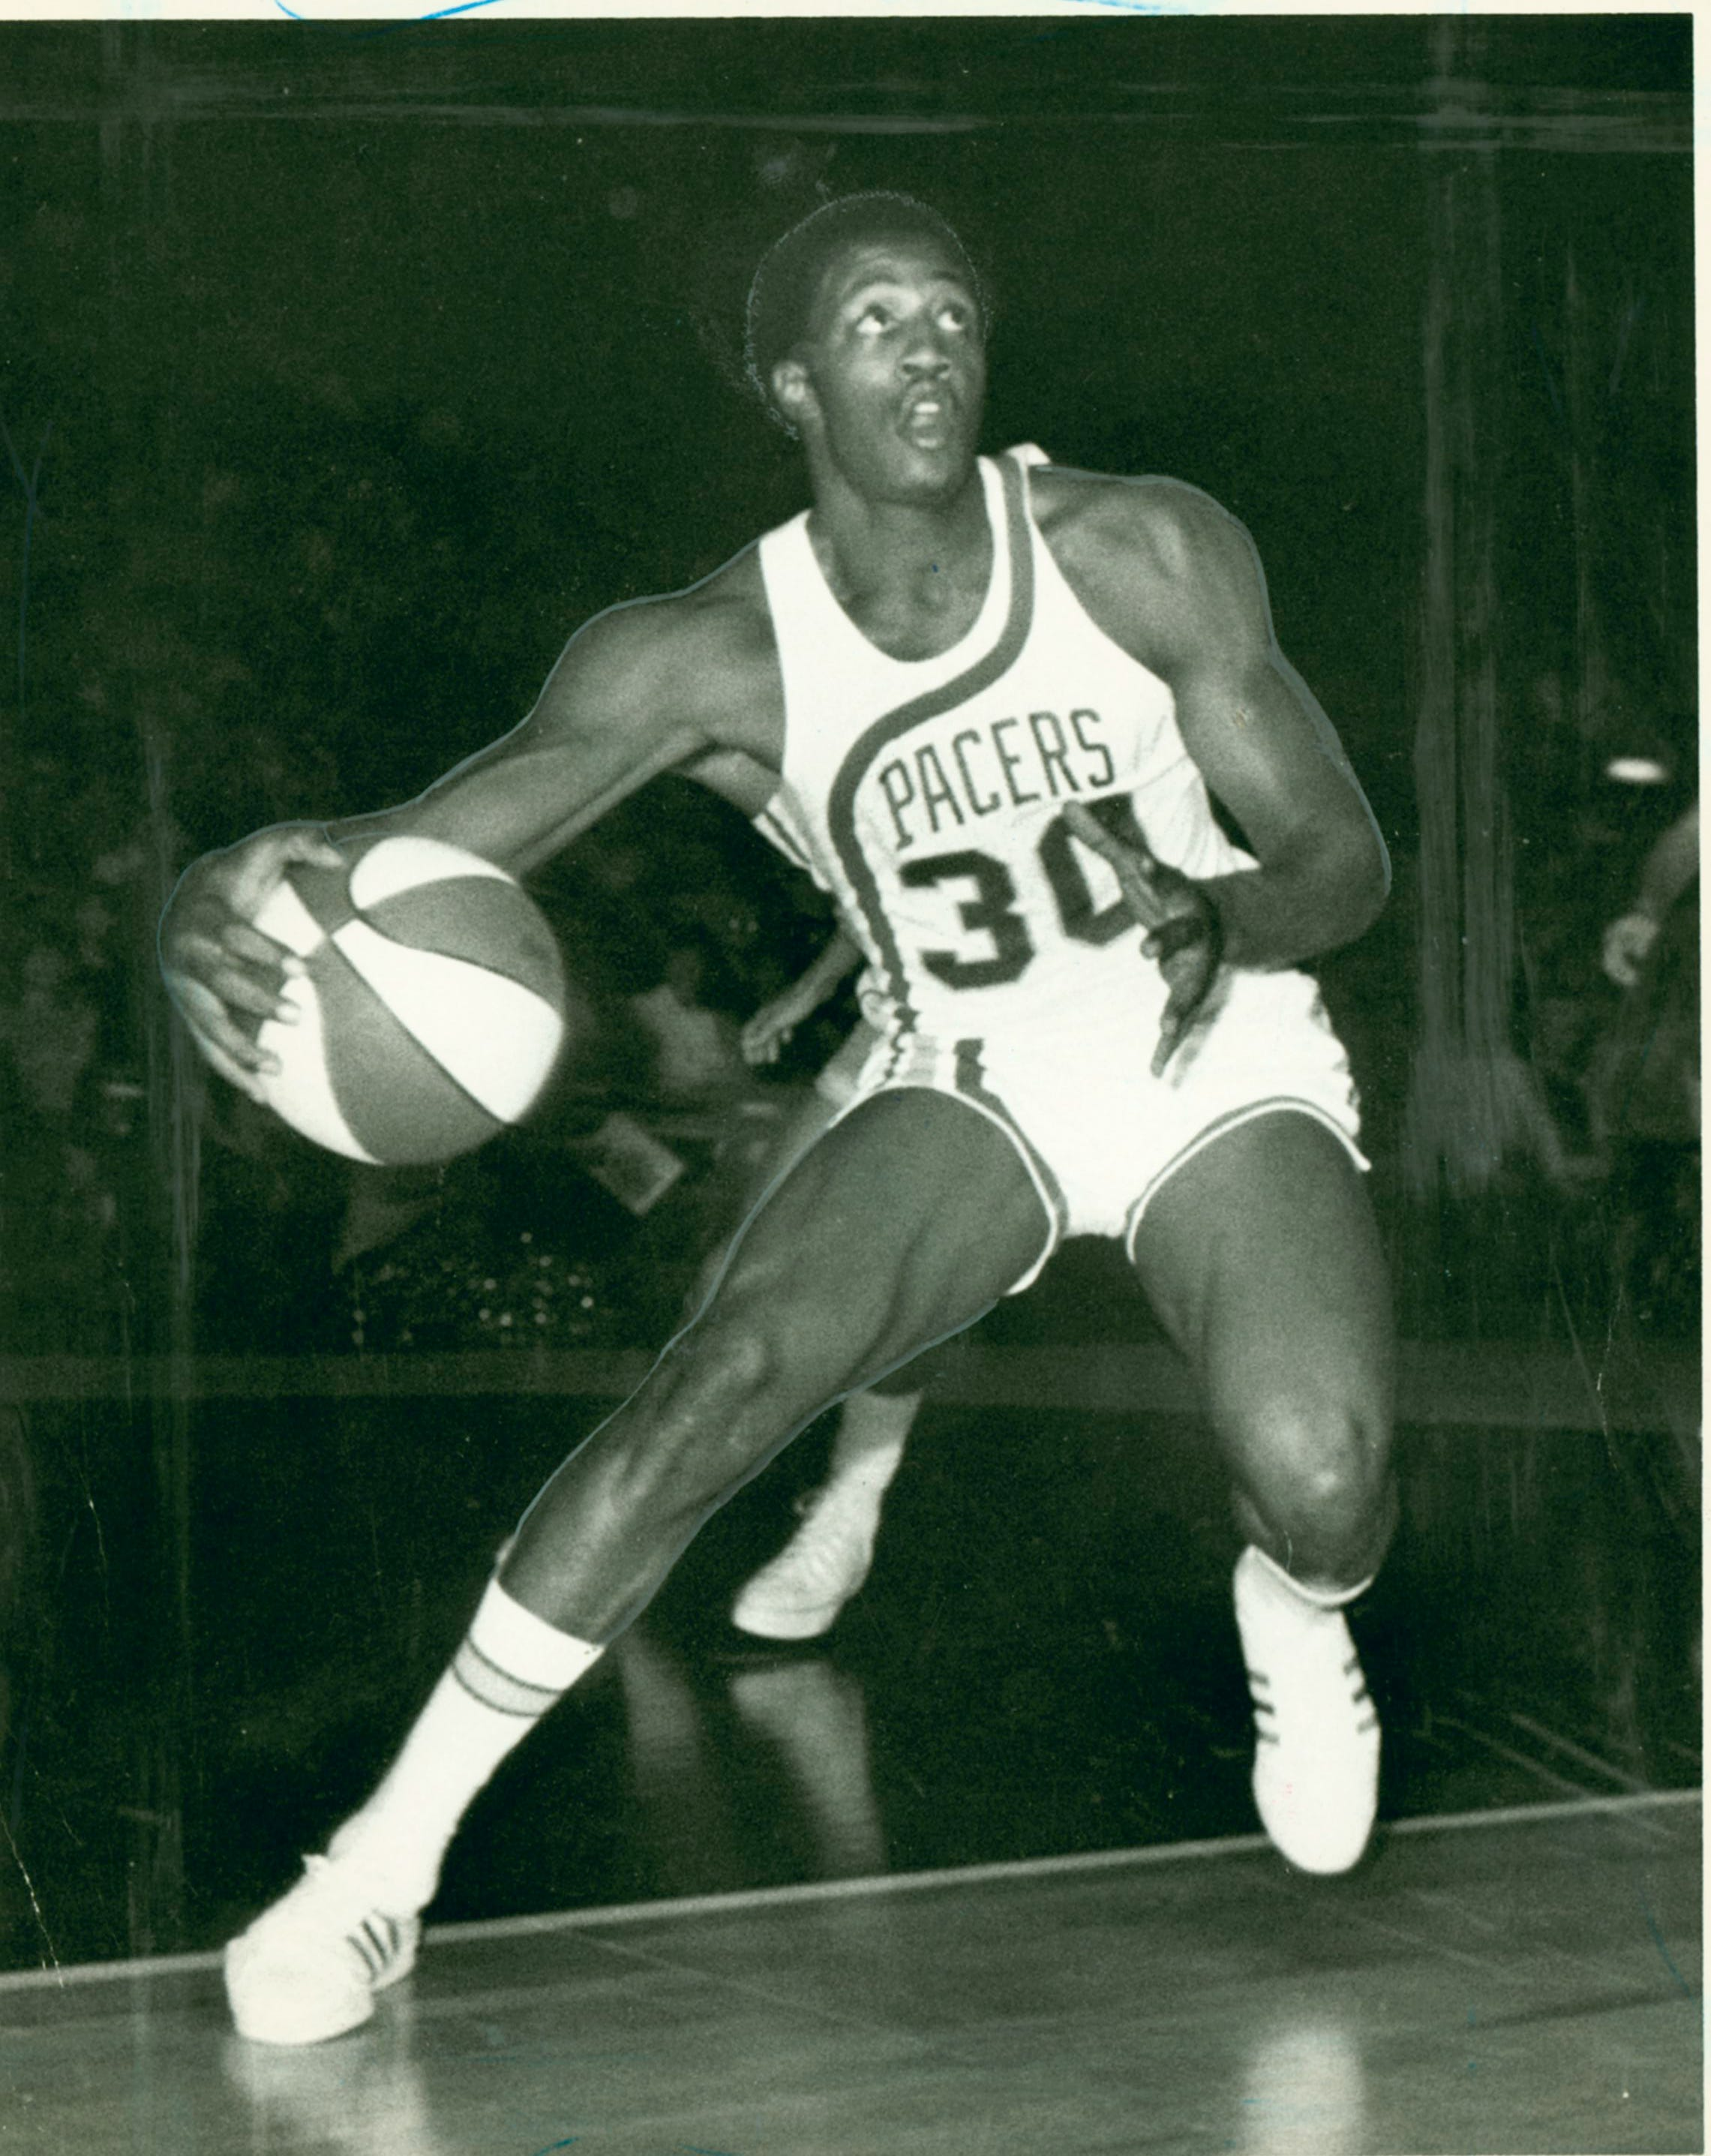 Connie Hawkins NYC basketball legend was the first Dr J